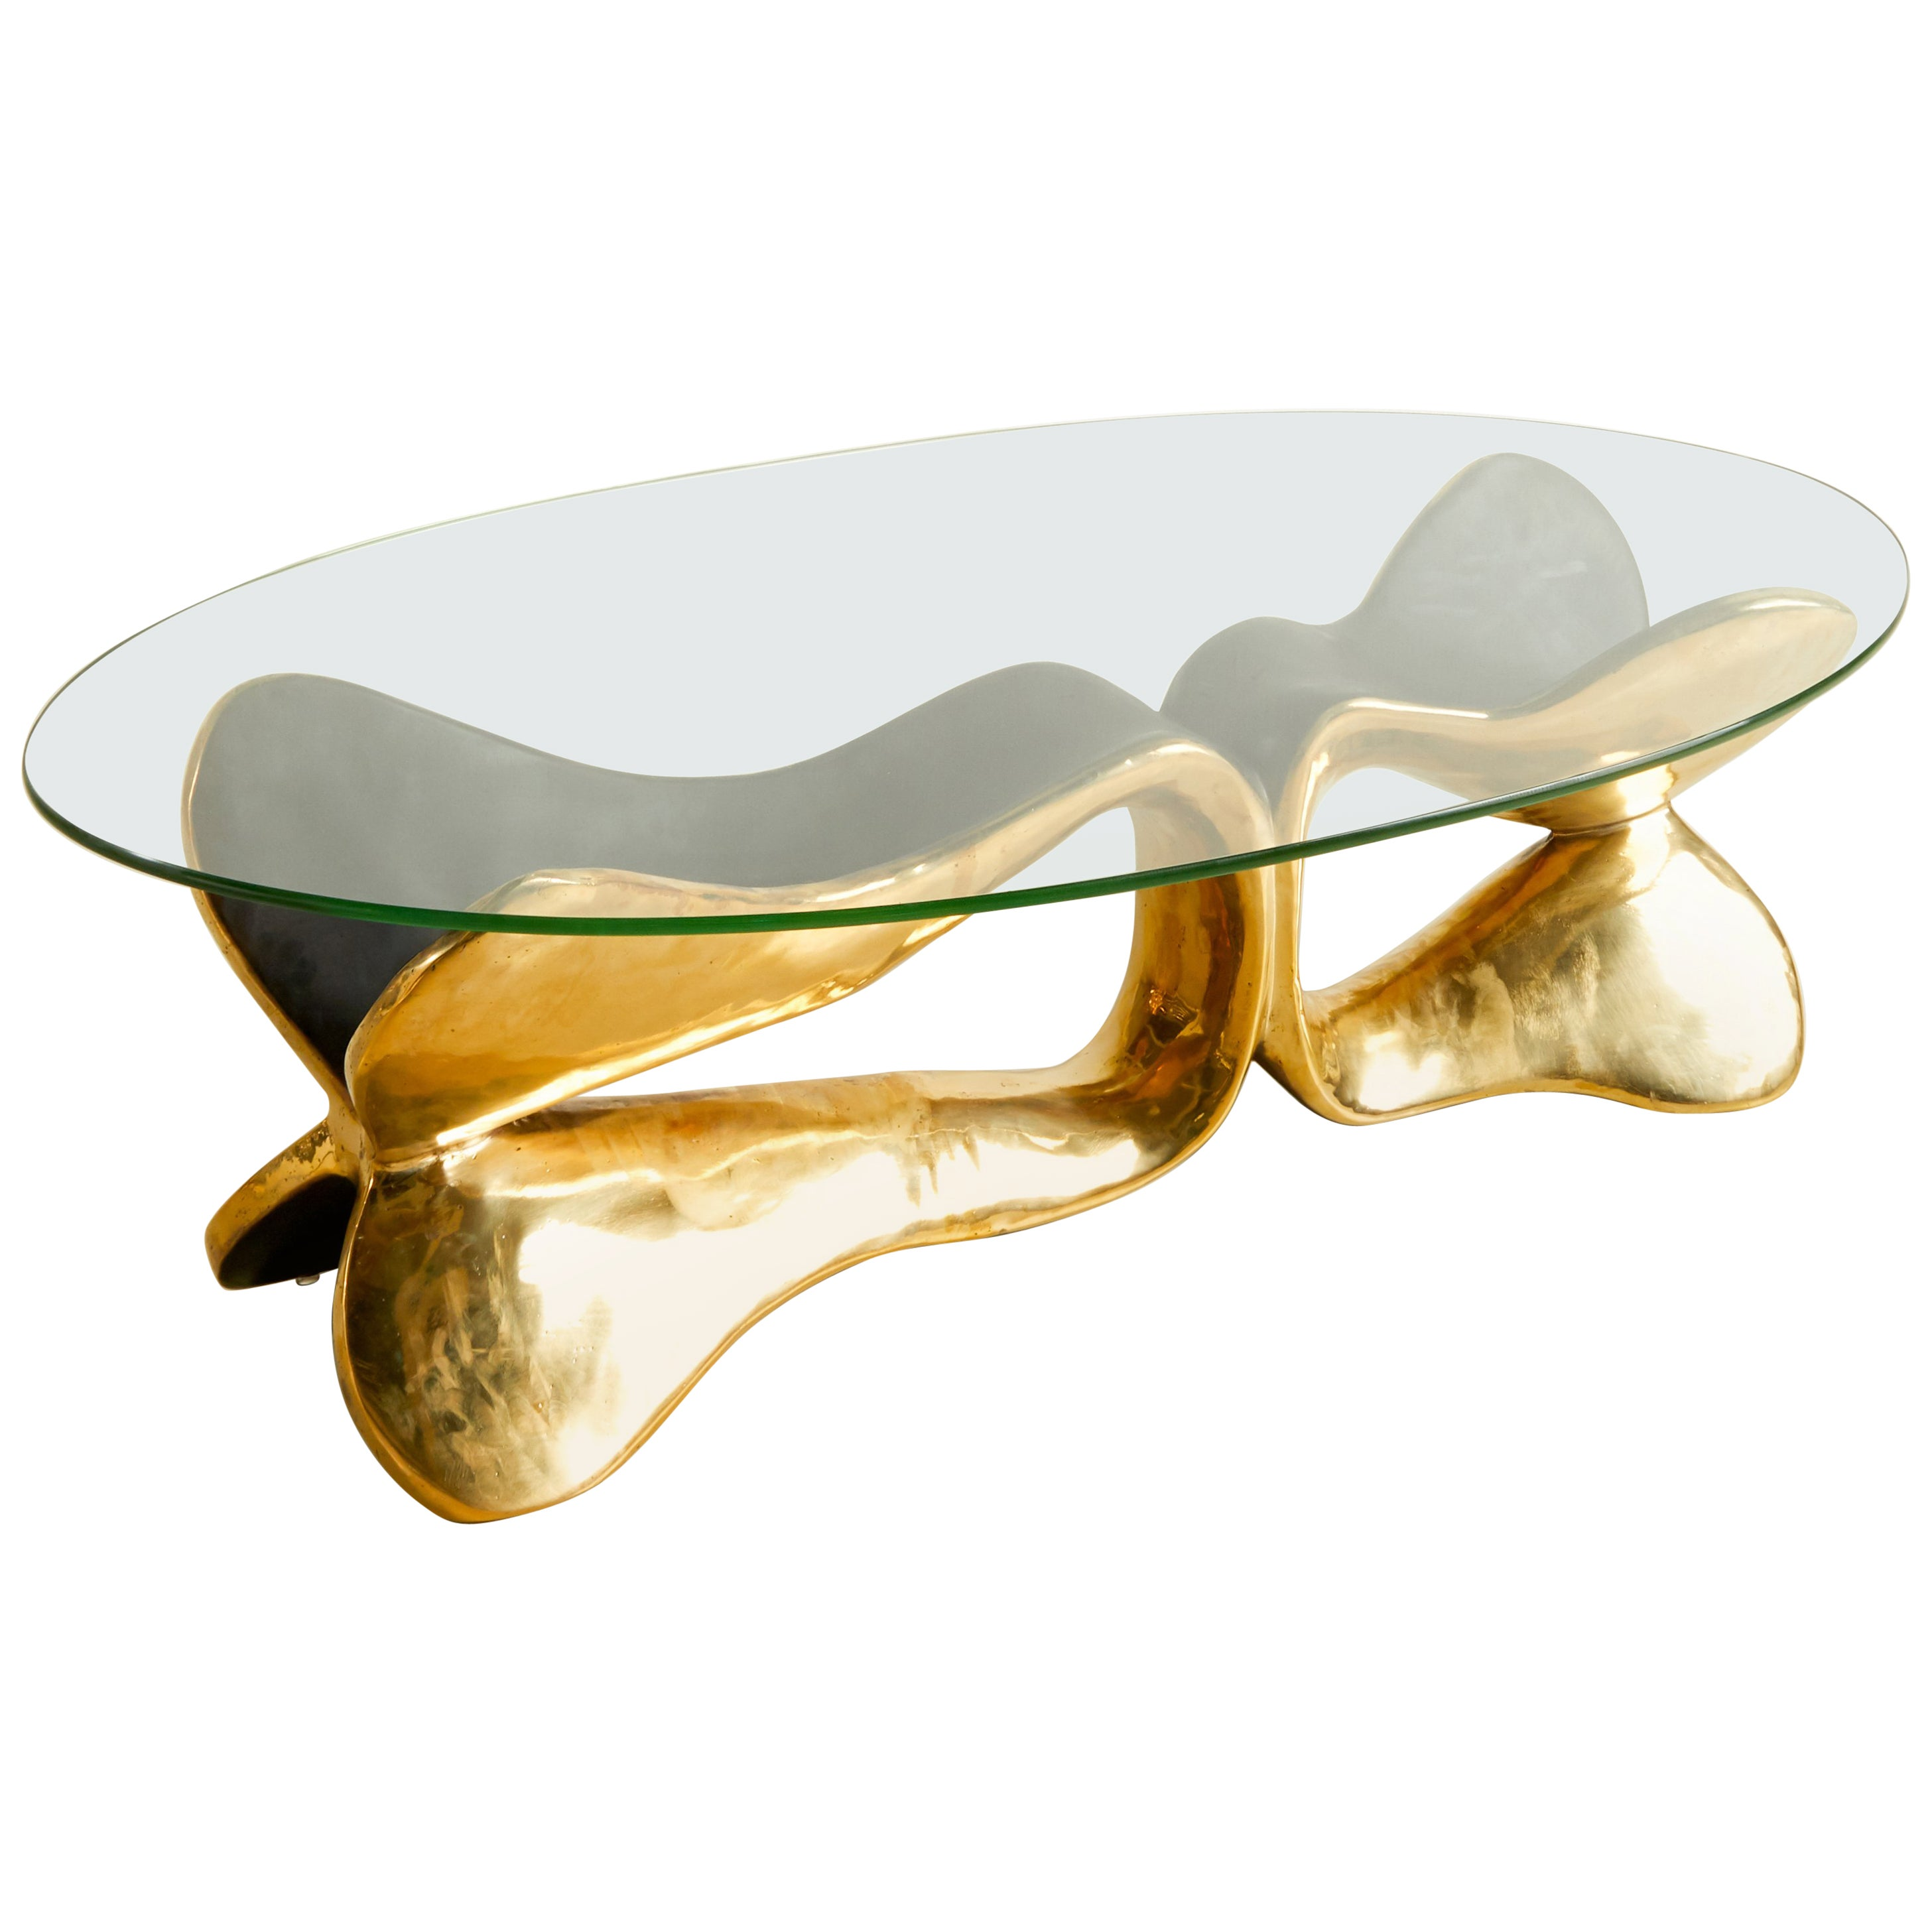 Brass Sculpted Console Table, Homage to Cesar's Compression, Misaya